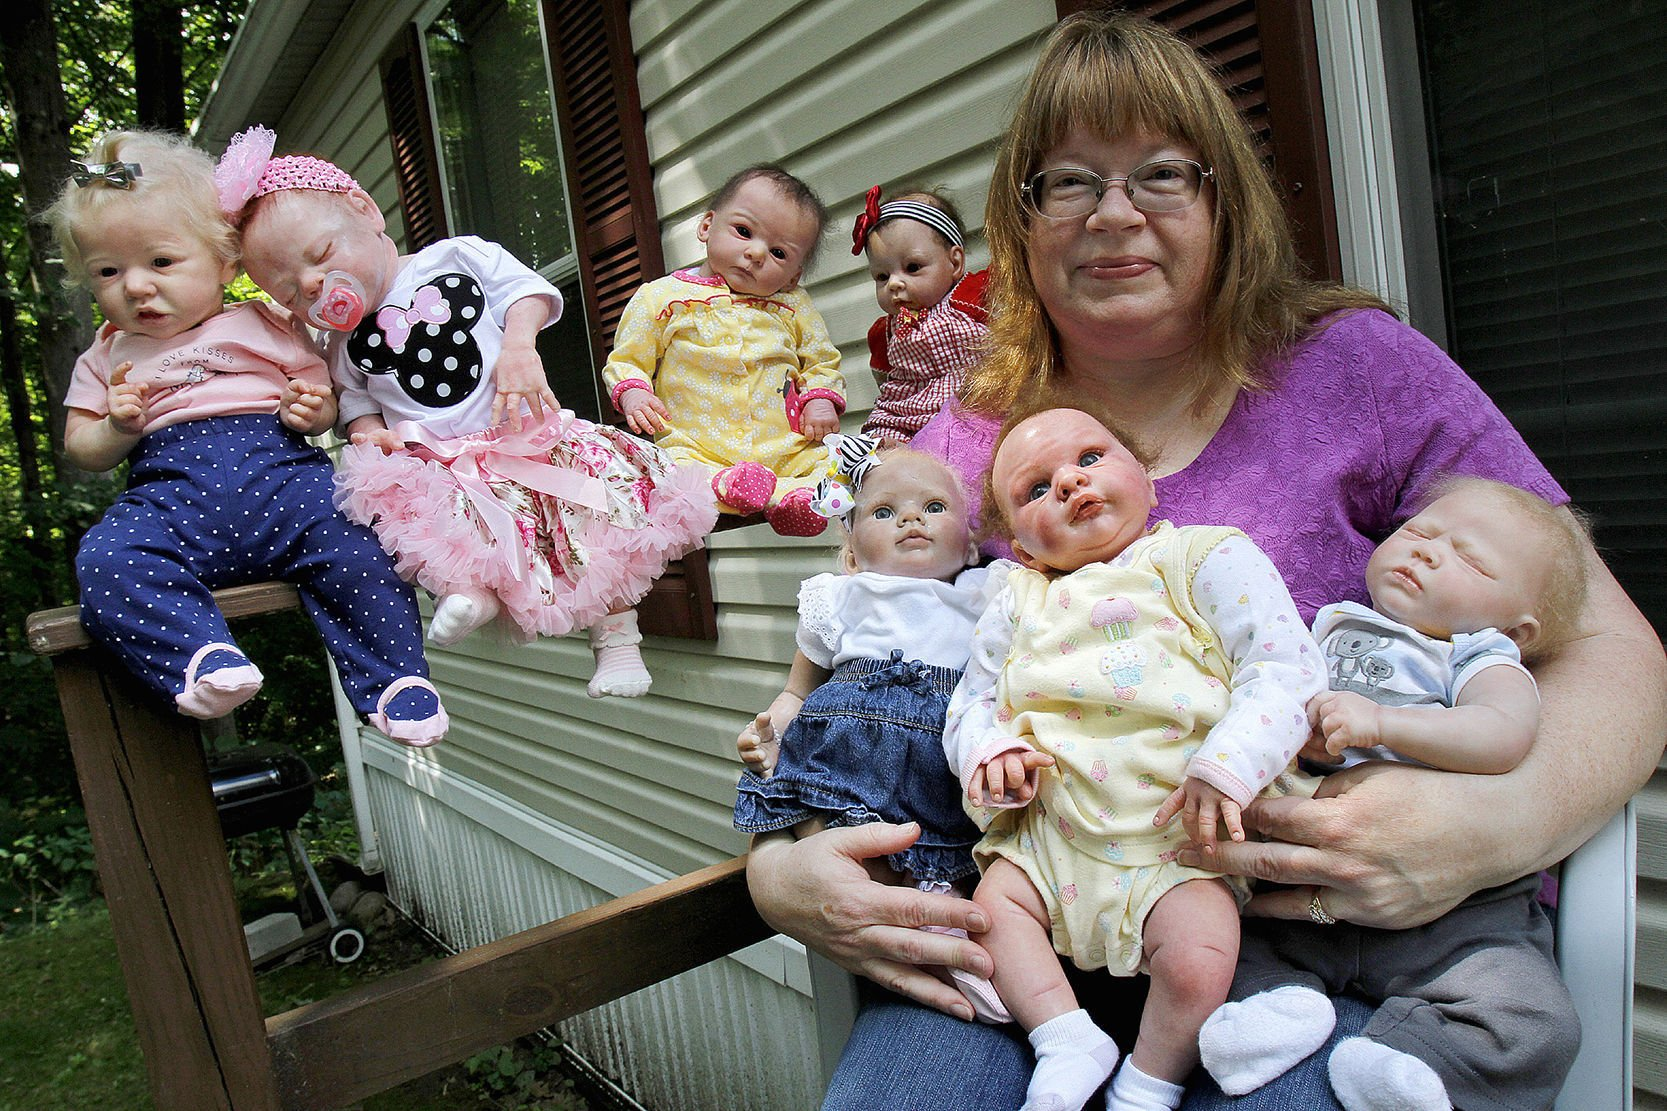 Baby Dolls Vip A Shattered Calm Keene Incident Offers Window Into World Of